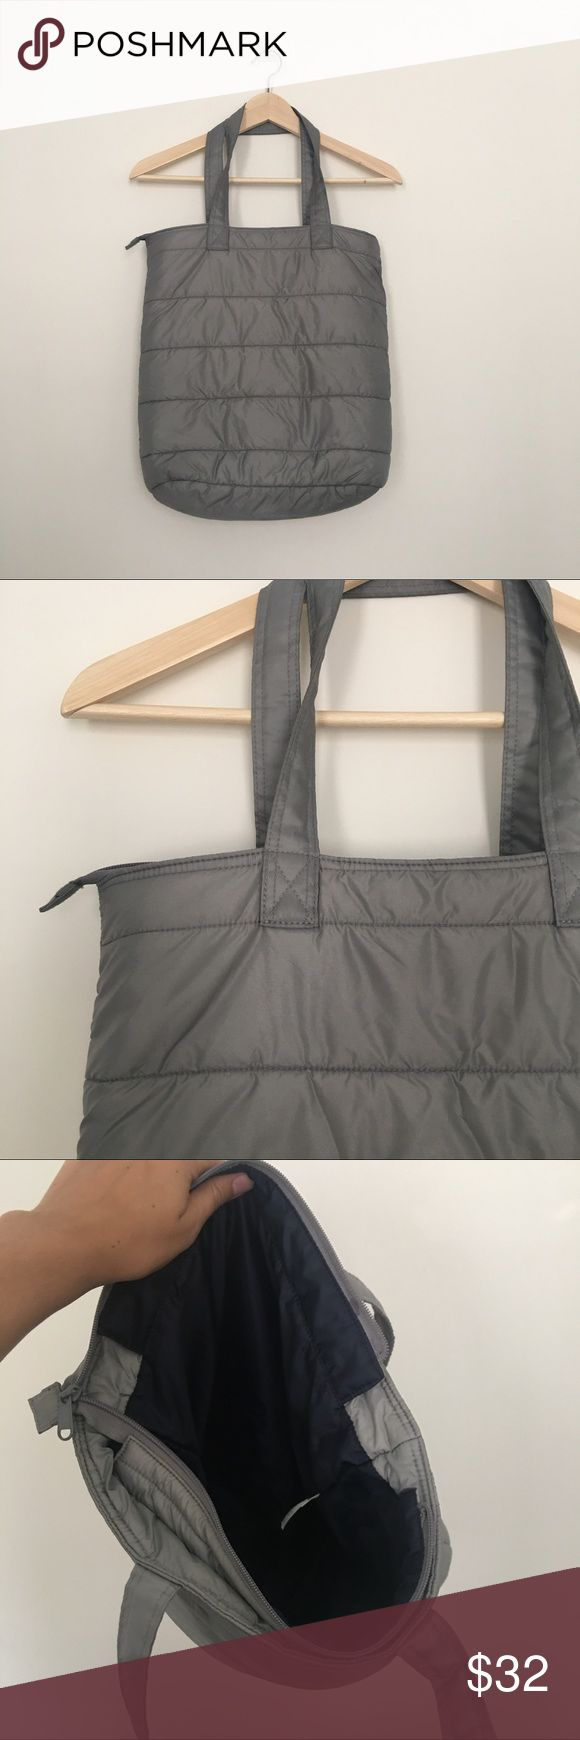 Uniqlo NWOT grey down insulated tote bag Wear your comfy down as a bag in the summer and have an instant pillow wherever you choose to lounge 👍 Uniqlo Bags Totes